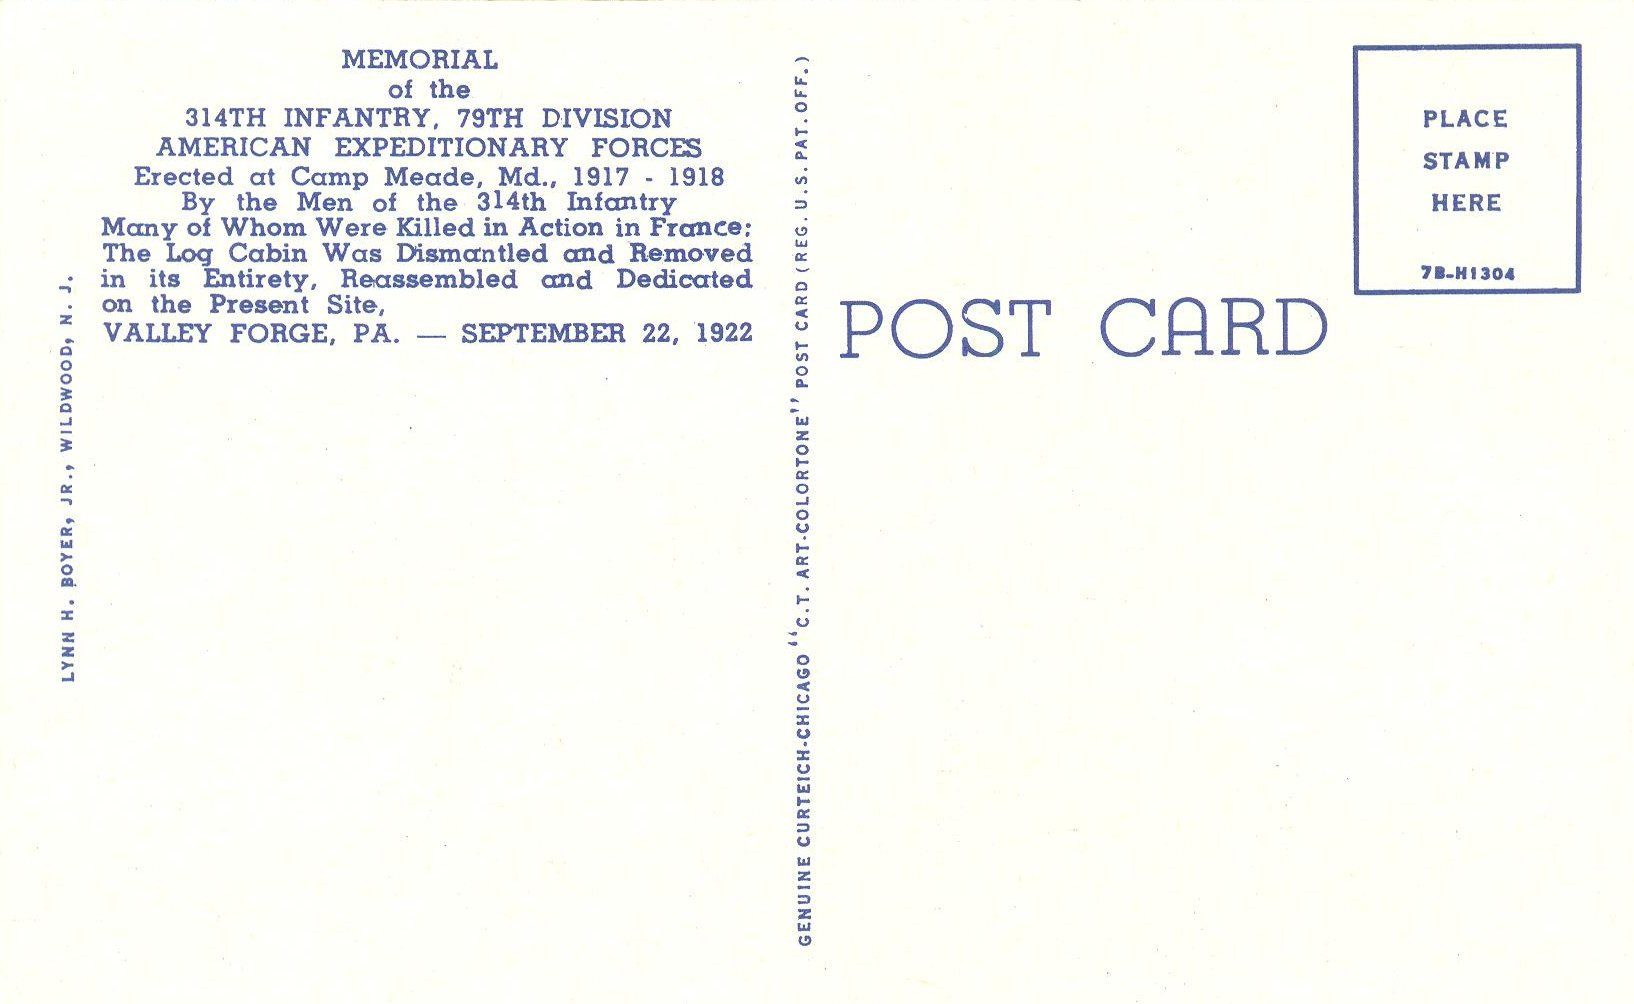 See The Back Of Postcard Here